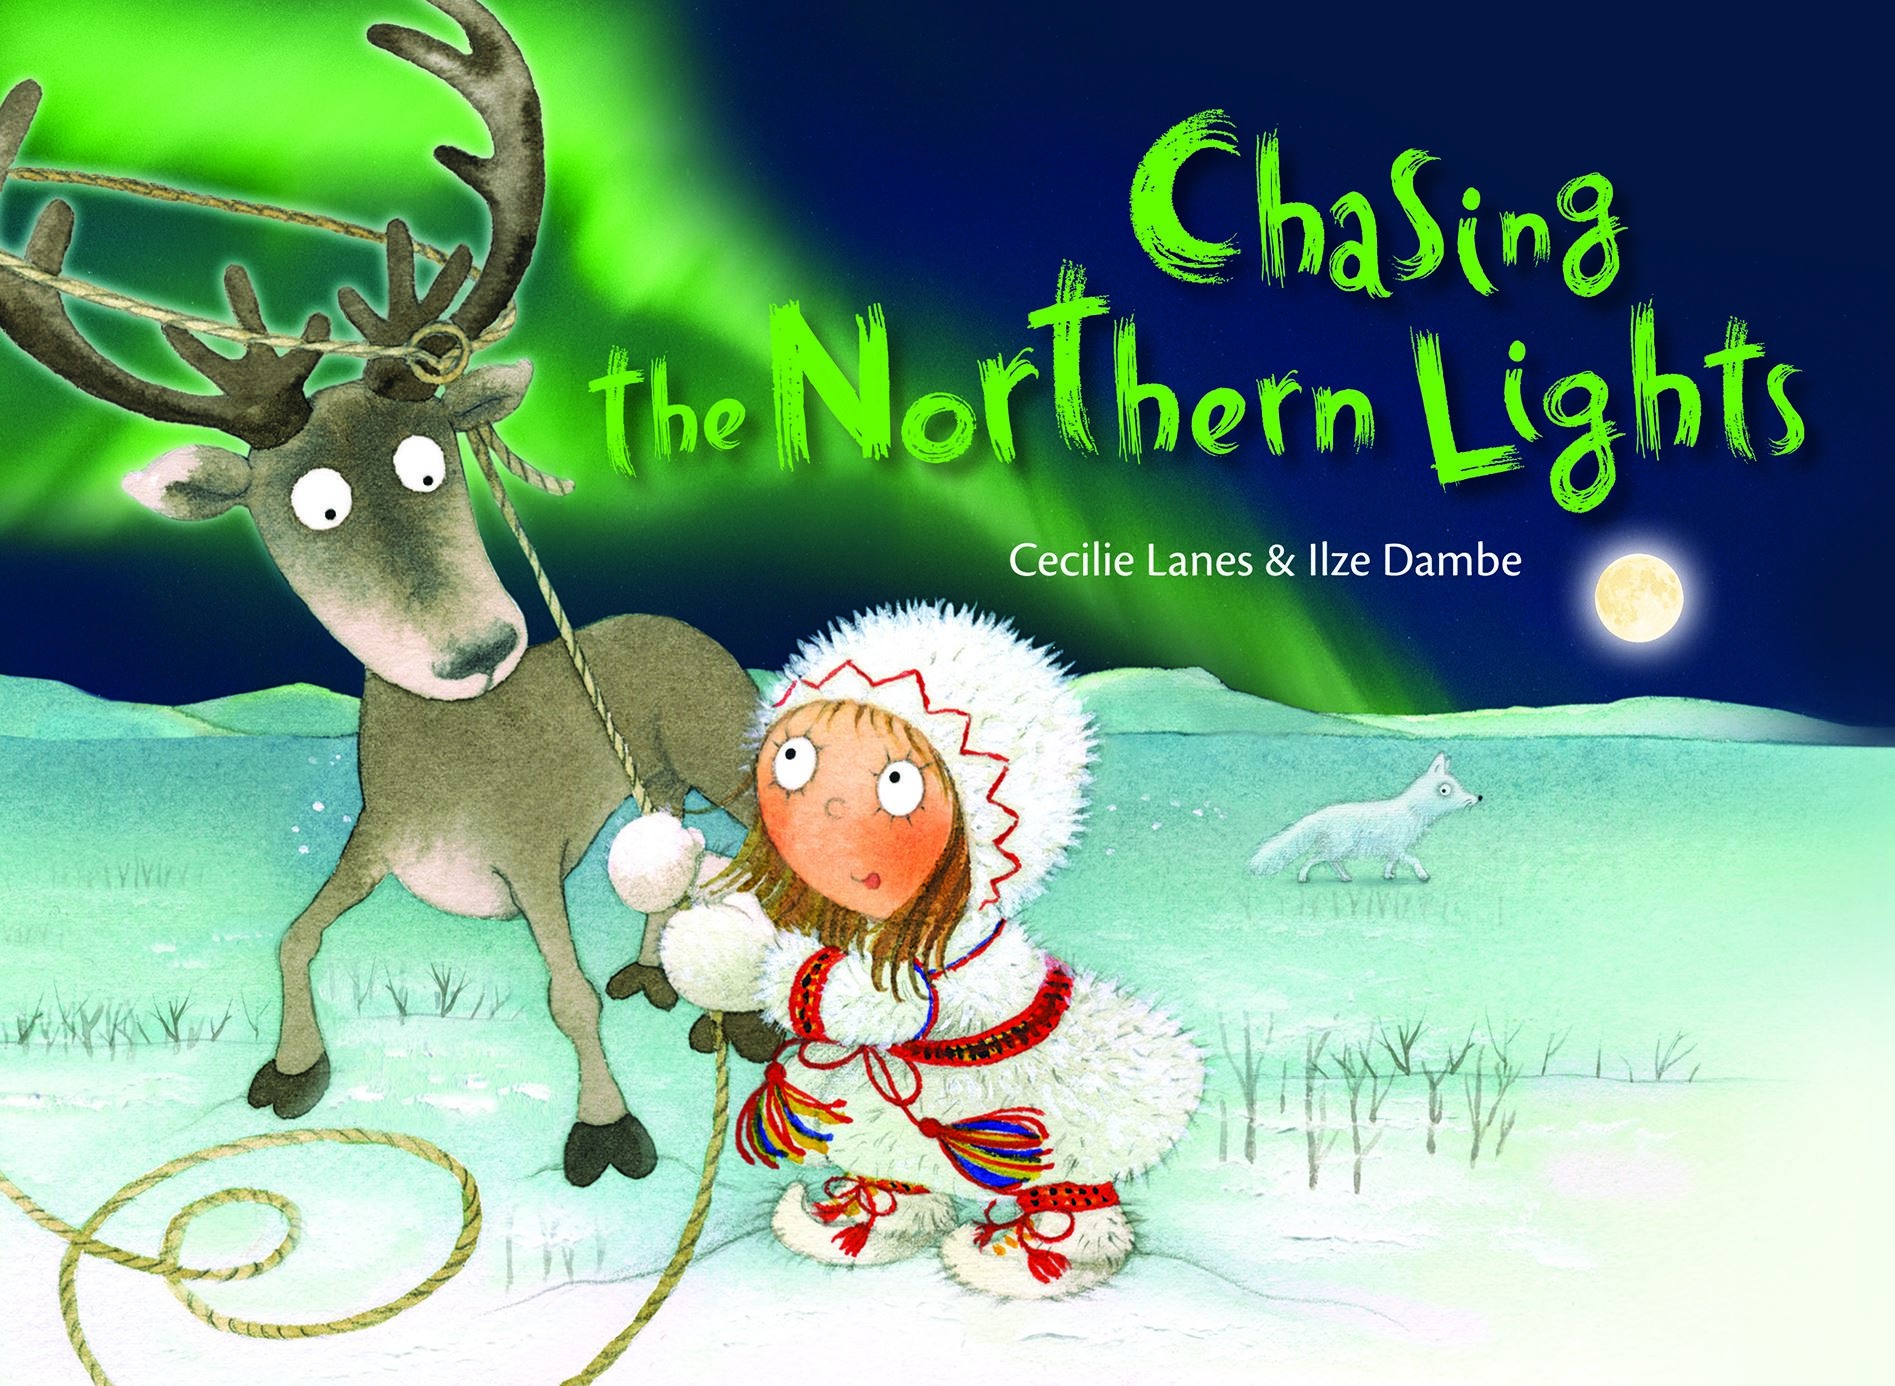 Chasing the Northern Lights (Norwegian version)